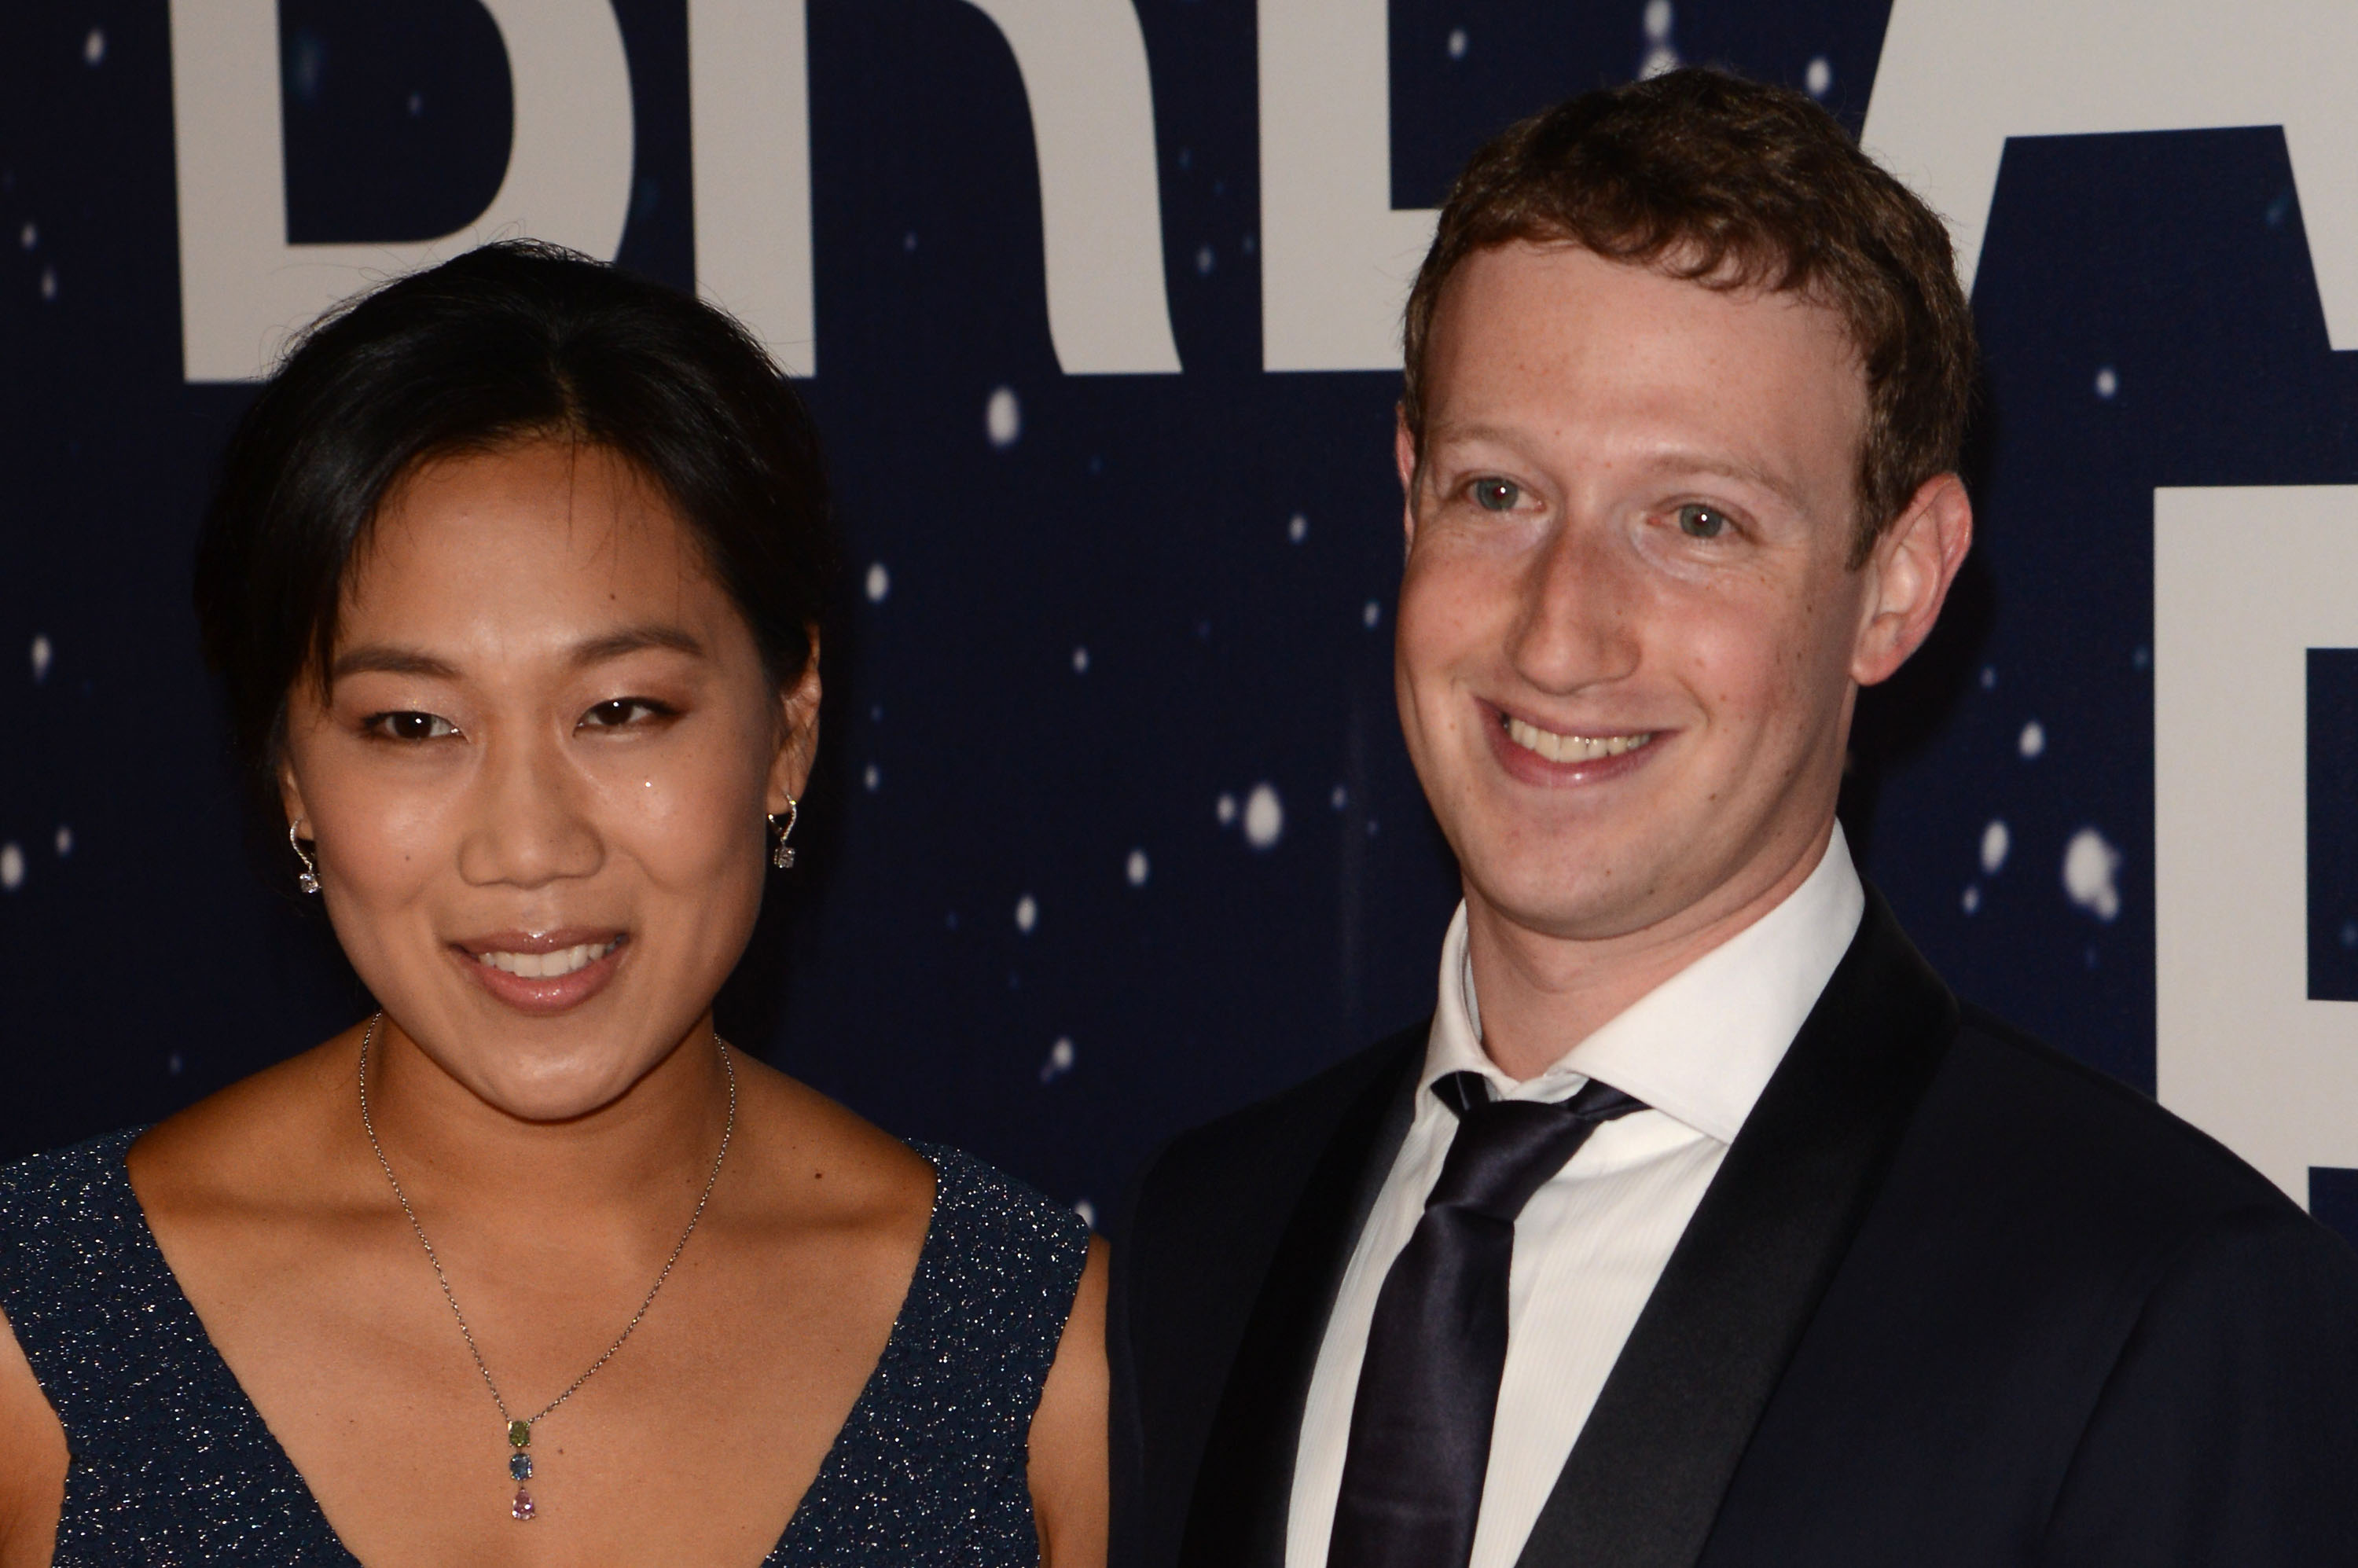 Priscilla Chan and Mark Zuckerberg attend the 2014 Breakthrough Prize Awards at NASA AMES Research Center on November 9, 2014 in Mountain View, California.